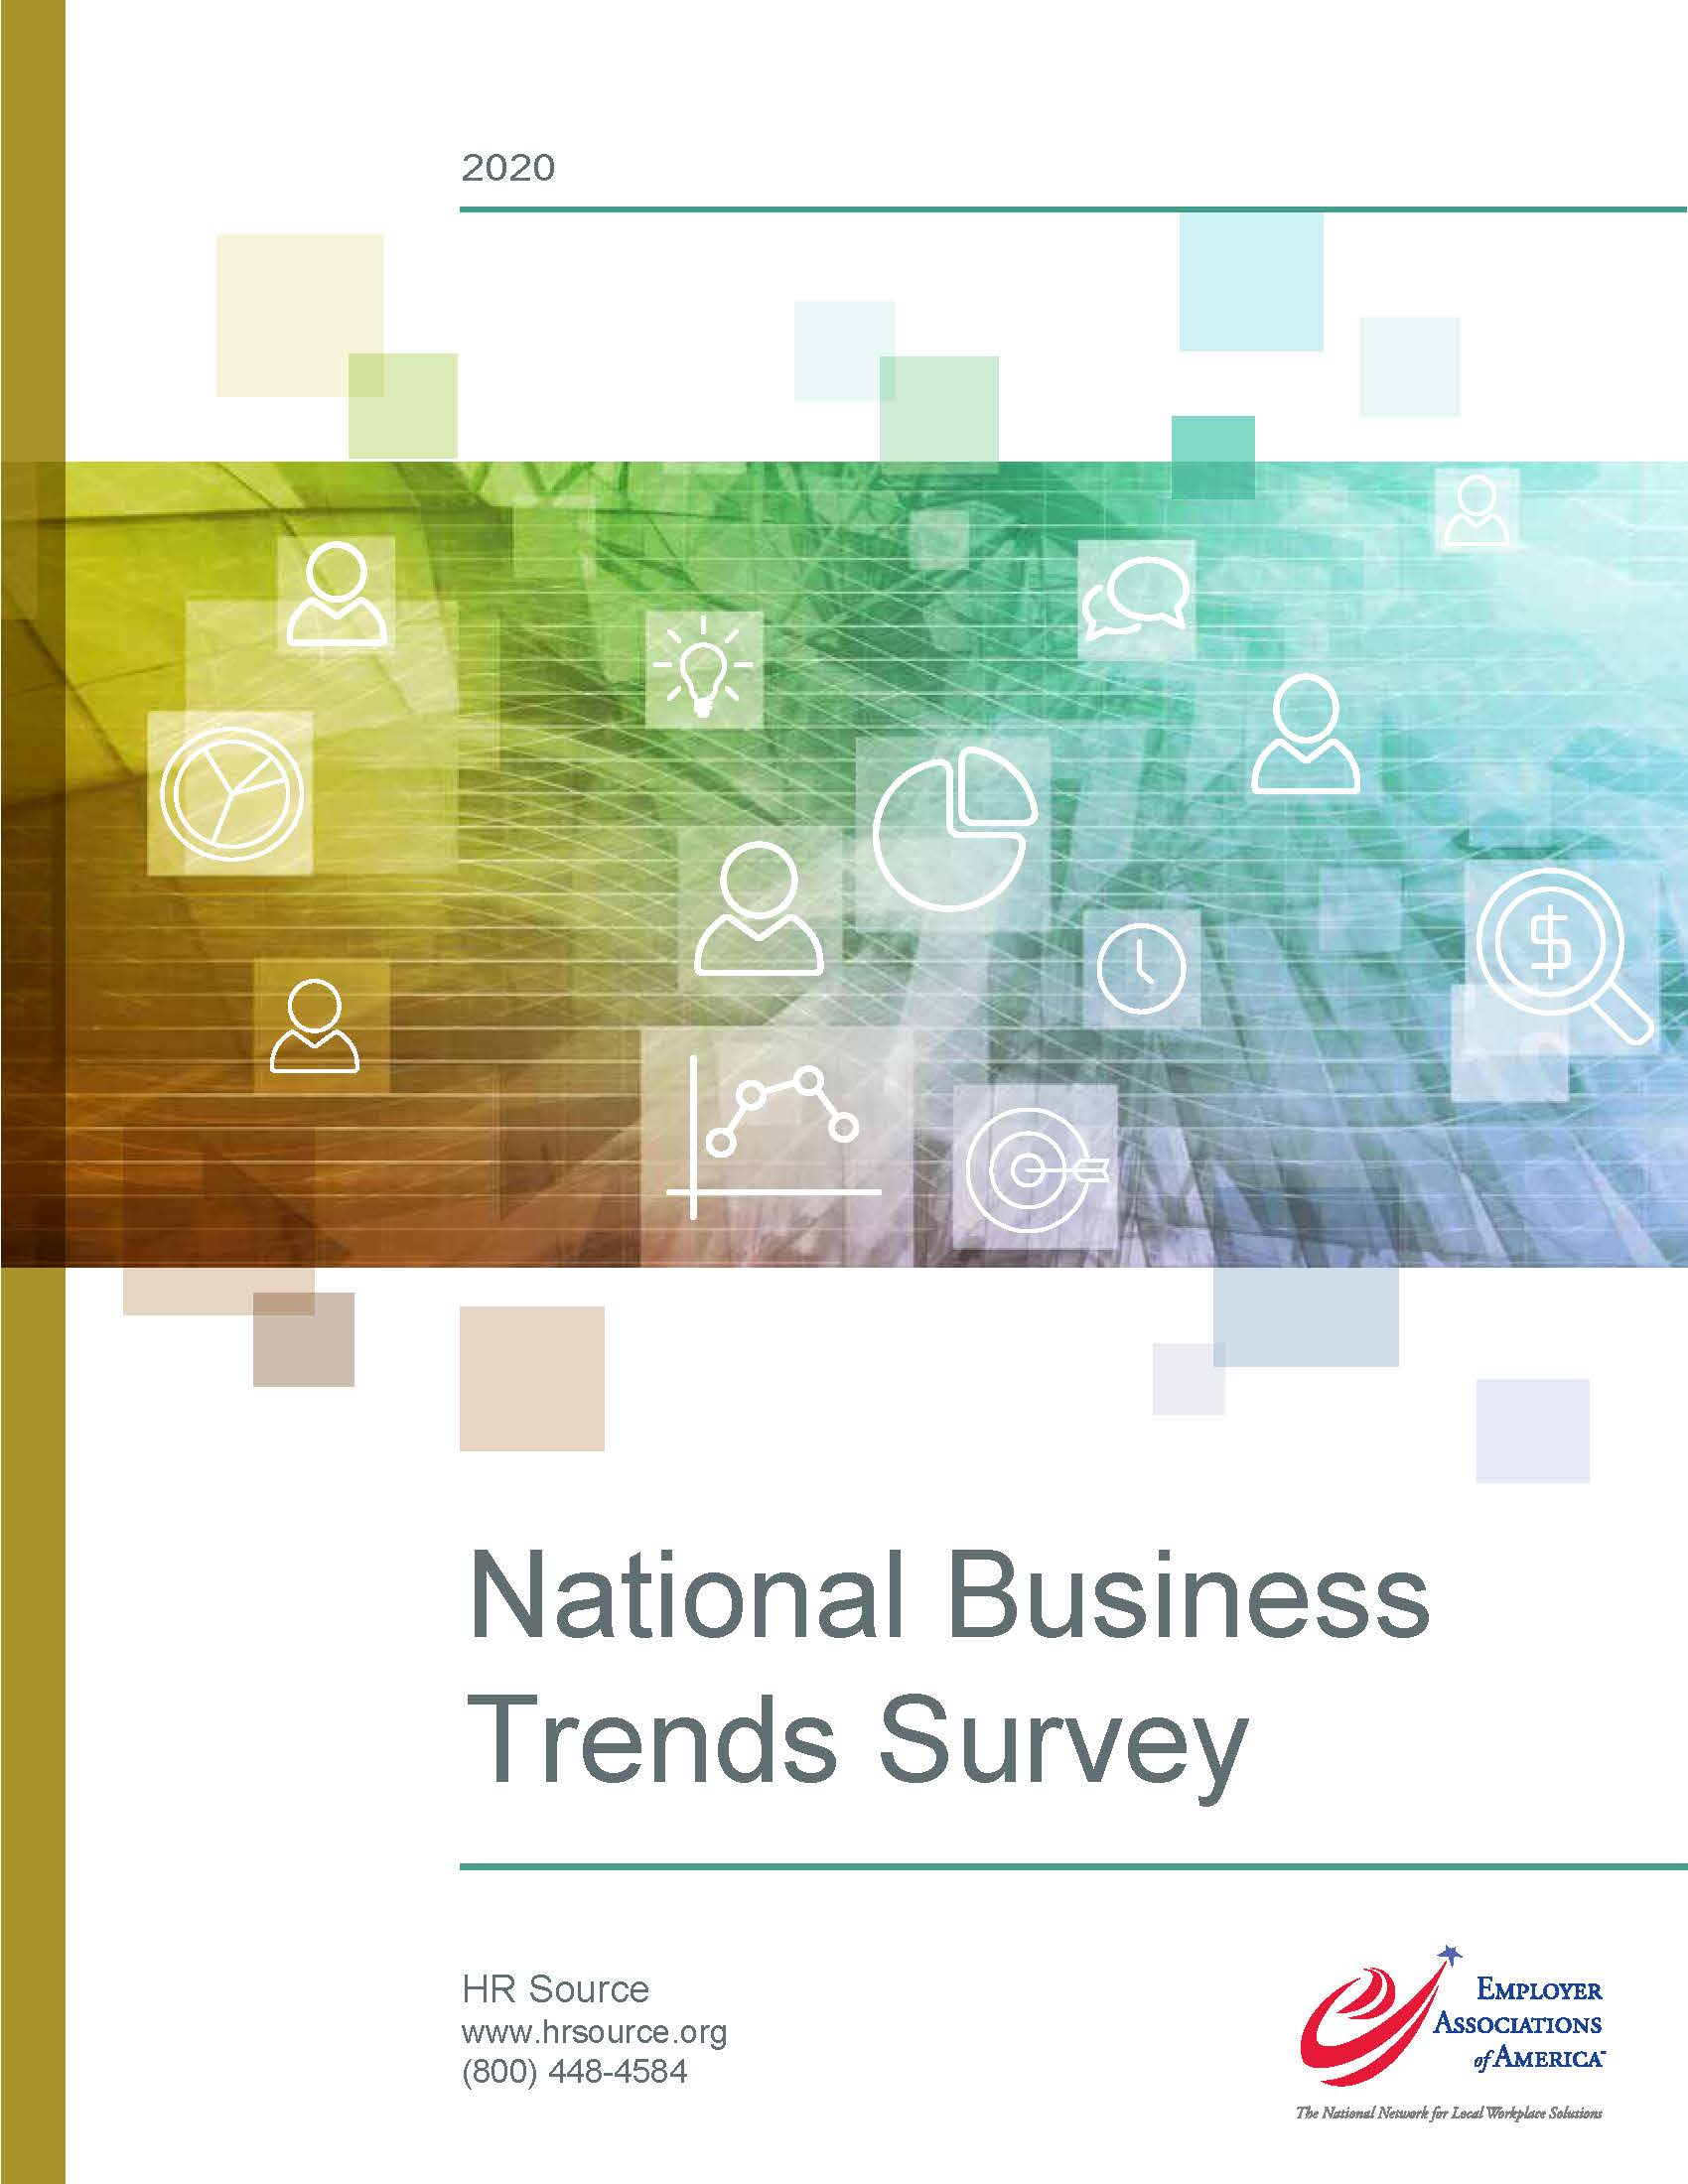 National Business Trends Survey 2020 (Members Only)